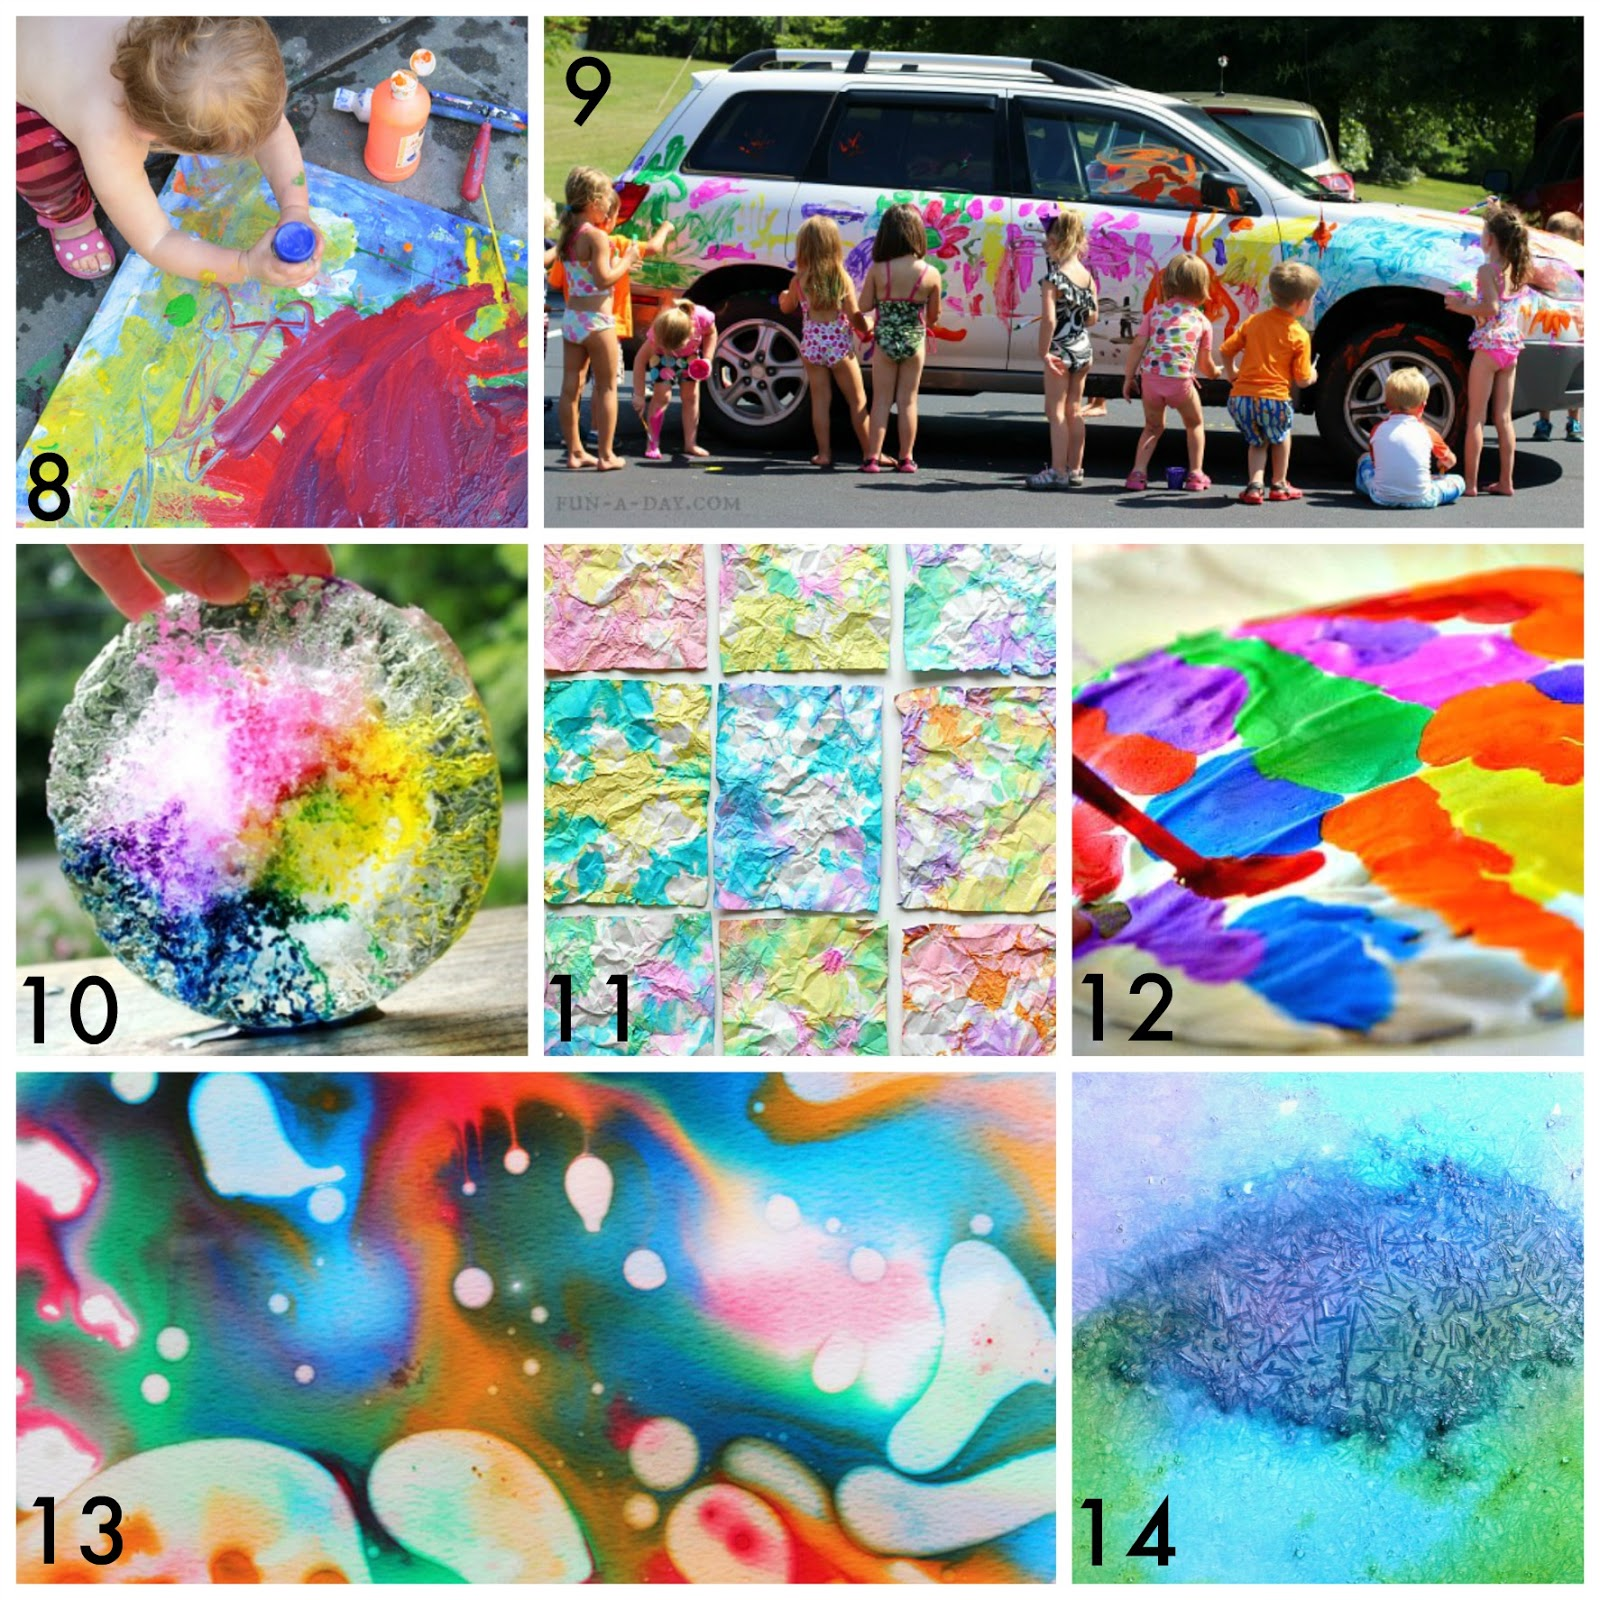 Paint The Car By Fun A Day 10 Ice And Watercolors From Artful Parent 11 Crumpled Paper Art Buggy Buddy 12